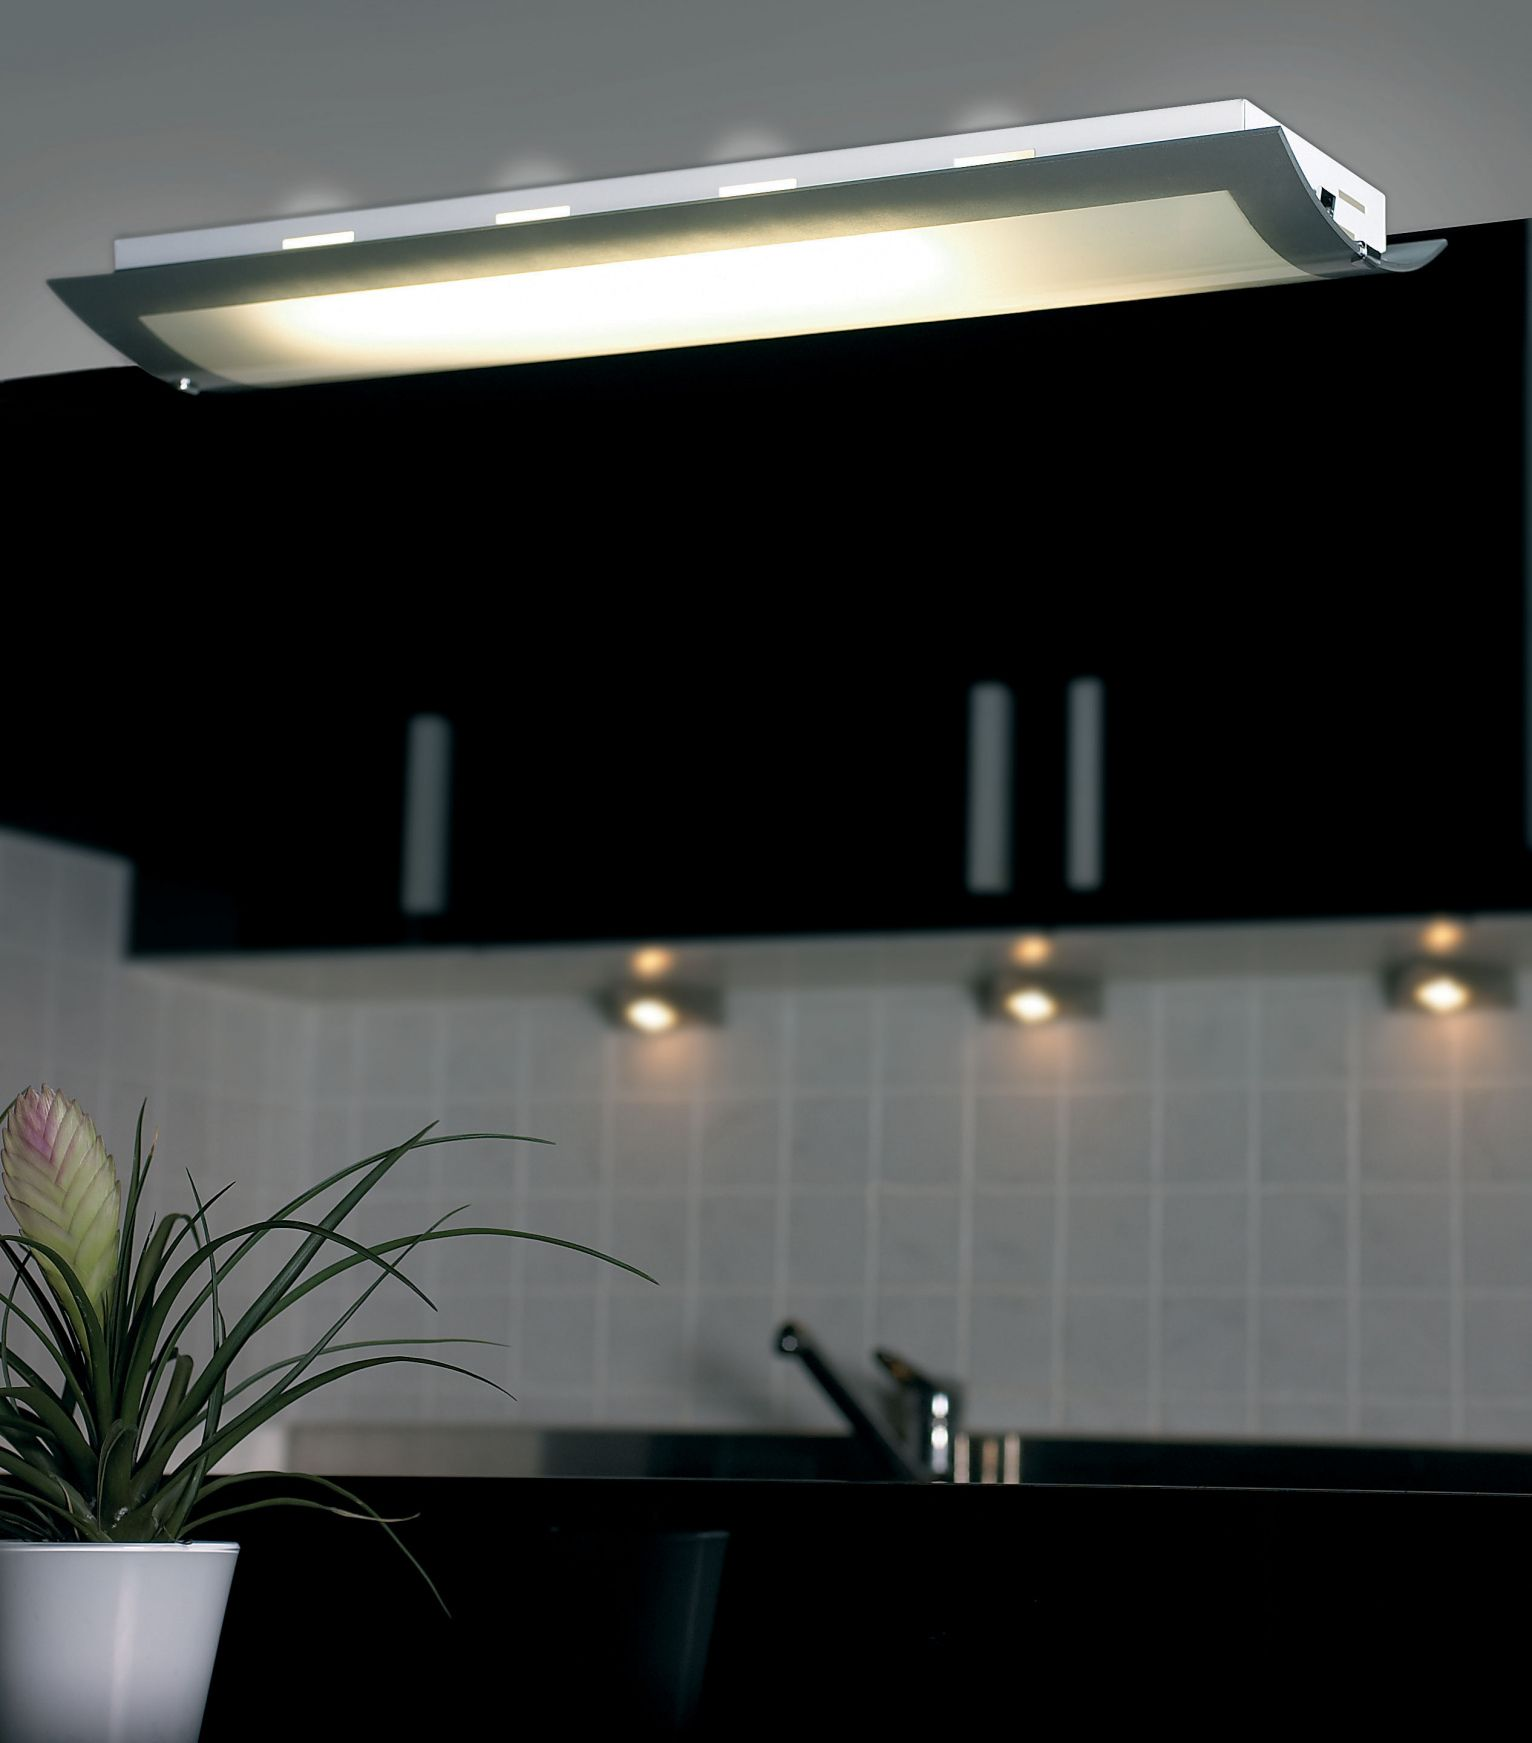 Led Ceiling Lights for Kitchen - Best Paint for Interior Walls Check ...